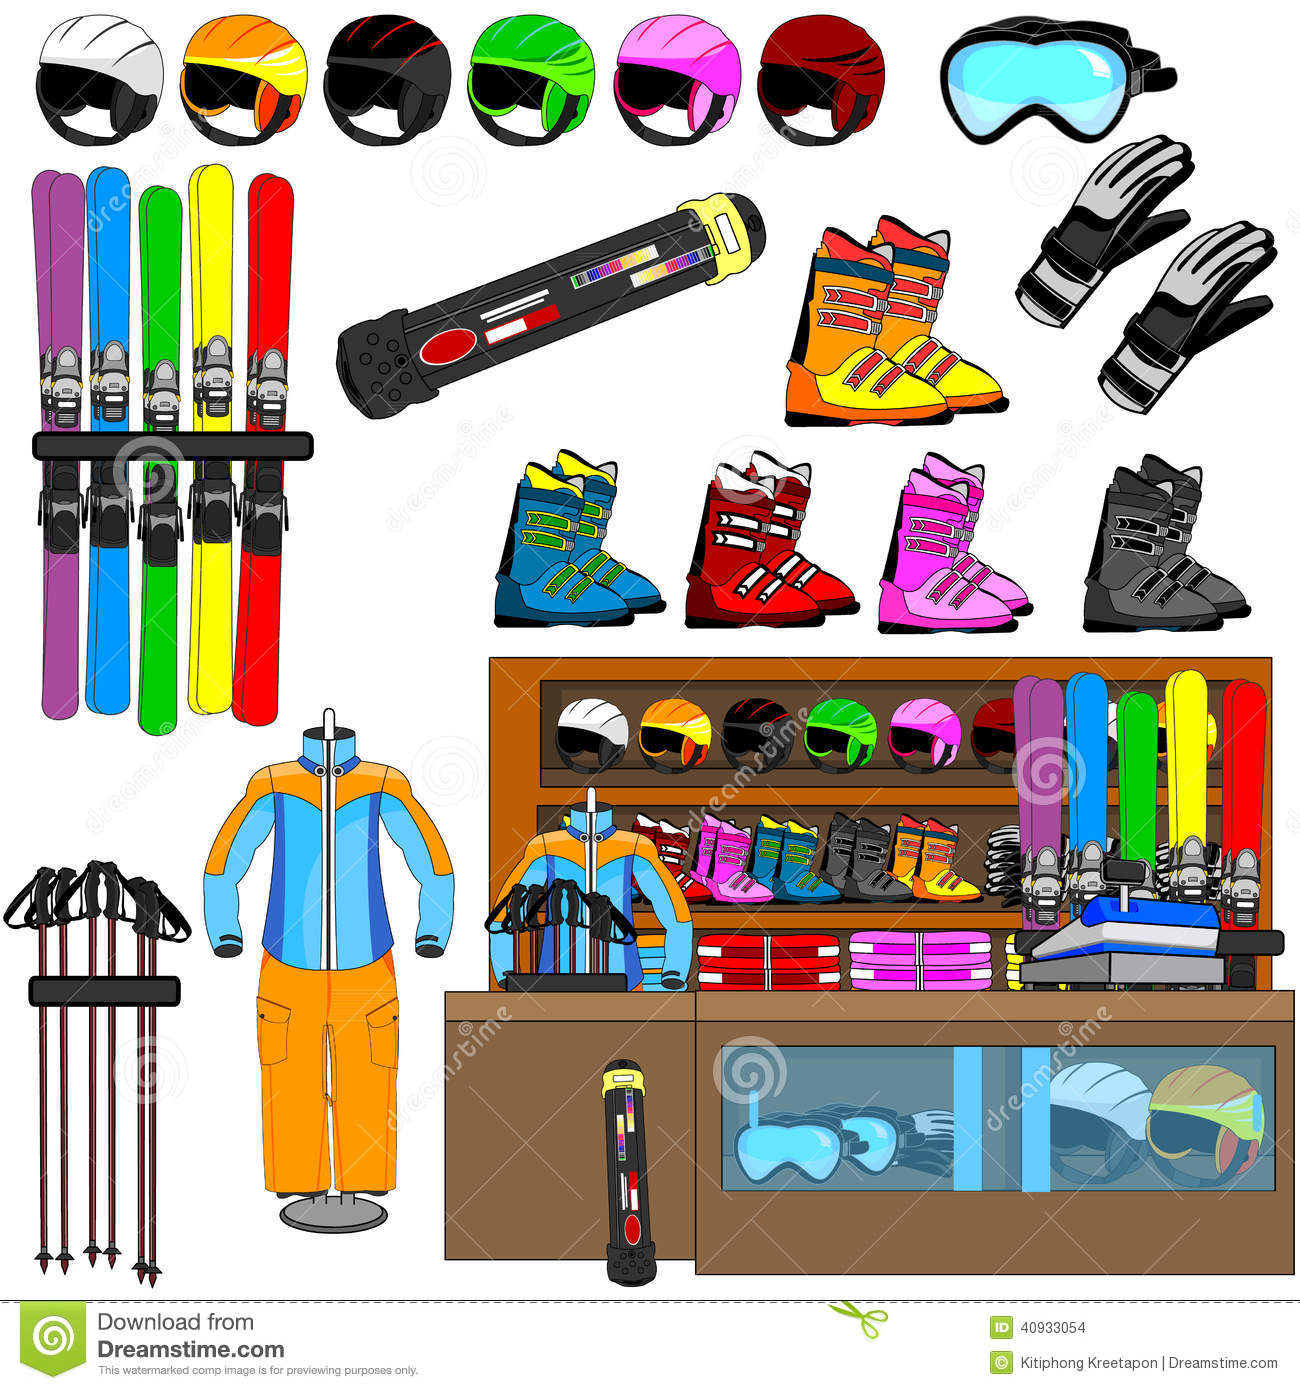 Ski Shop And Equipment Tools Vector Stock Vector - Image: 40933054